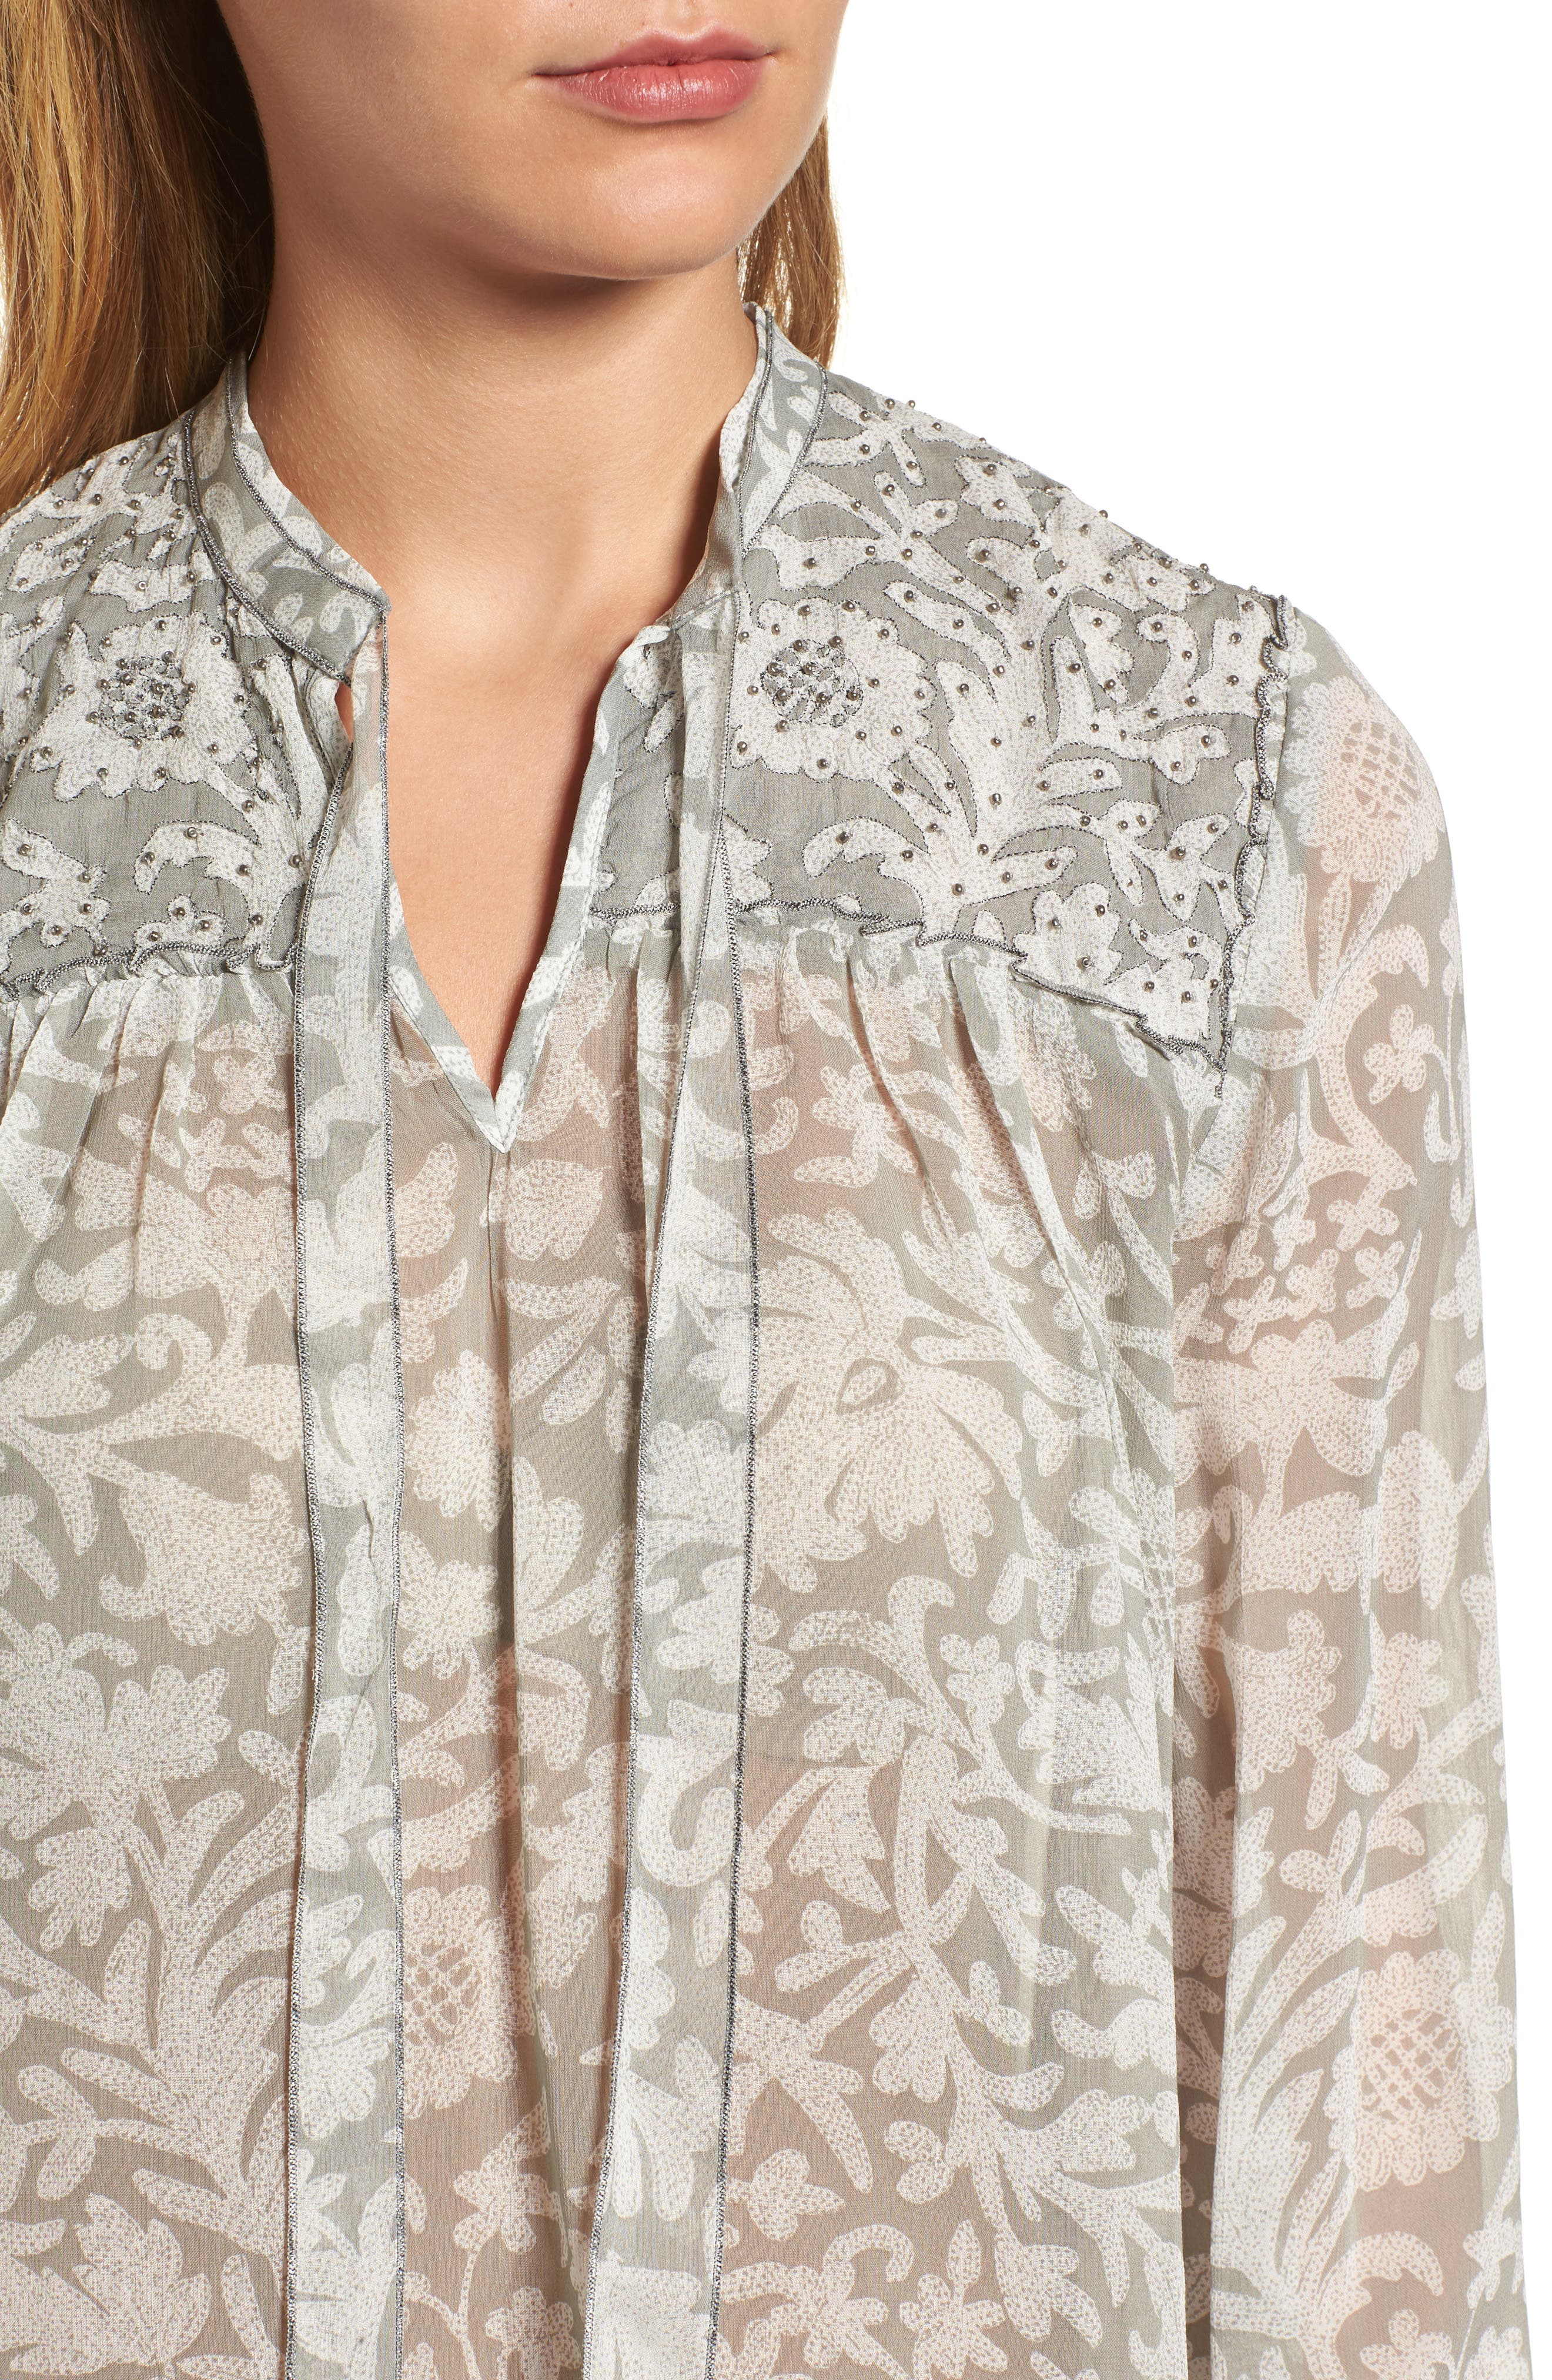 Beaded Floral Print Top,                             Alternate thumbnail 4, color,                             060